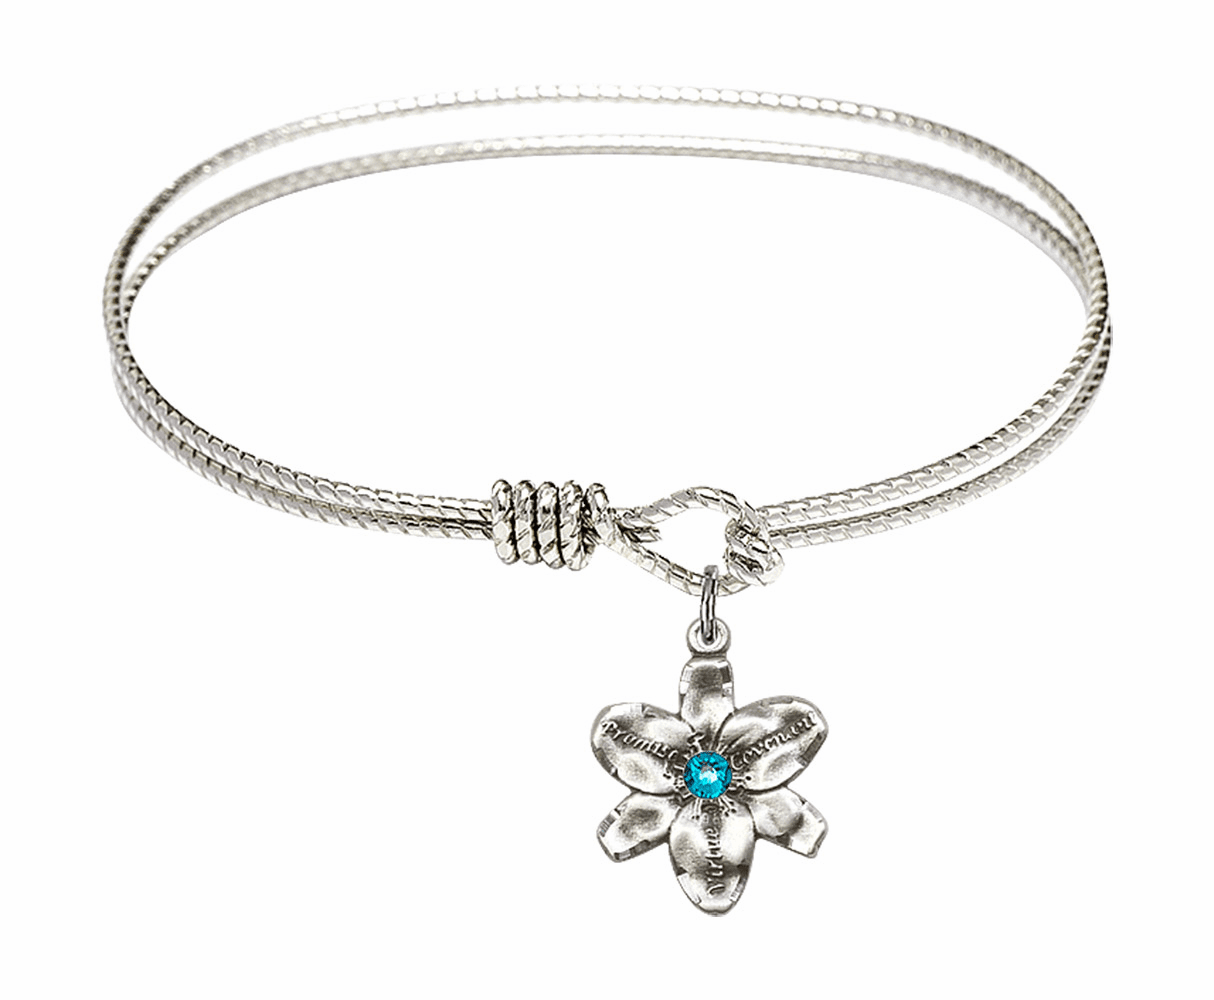 Textured Bangle Bracelet w/Zircon Flower Chastity Charm by Bliss Mfg